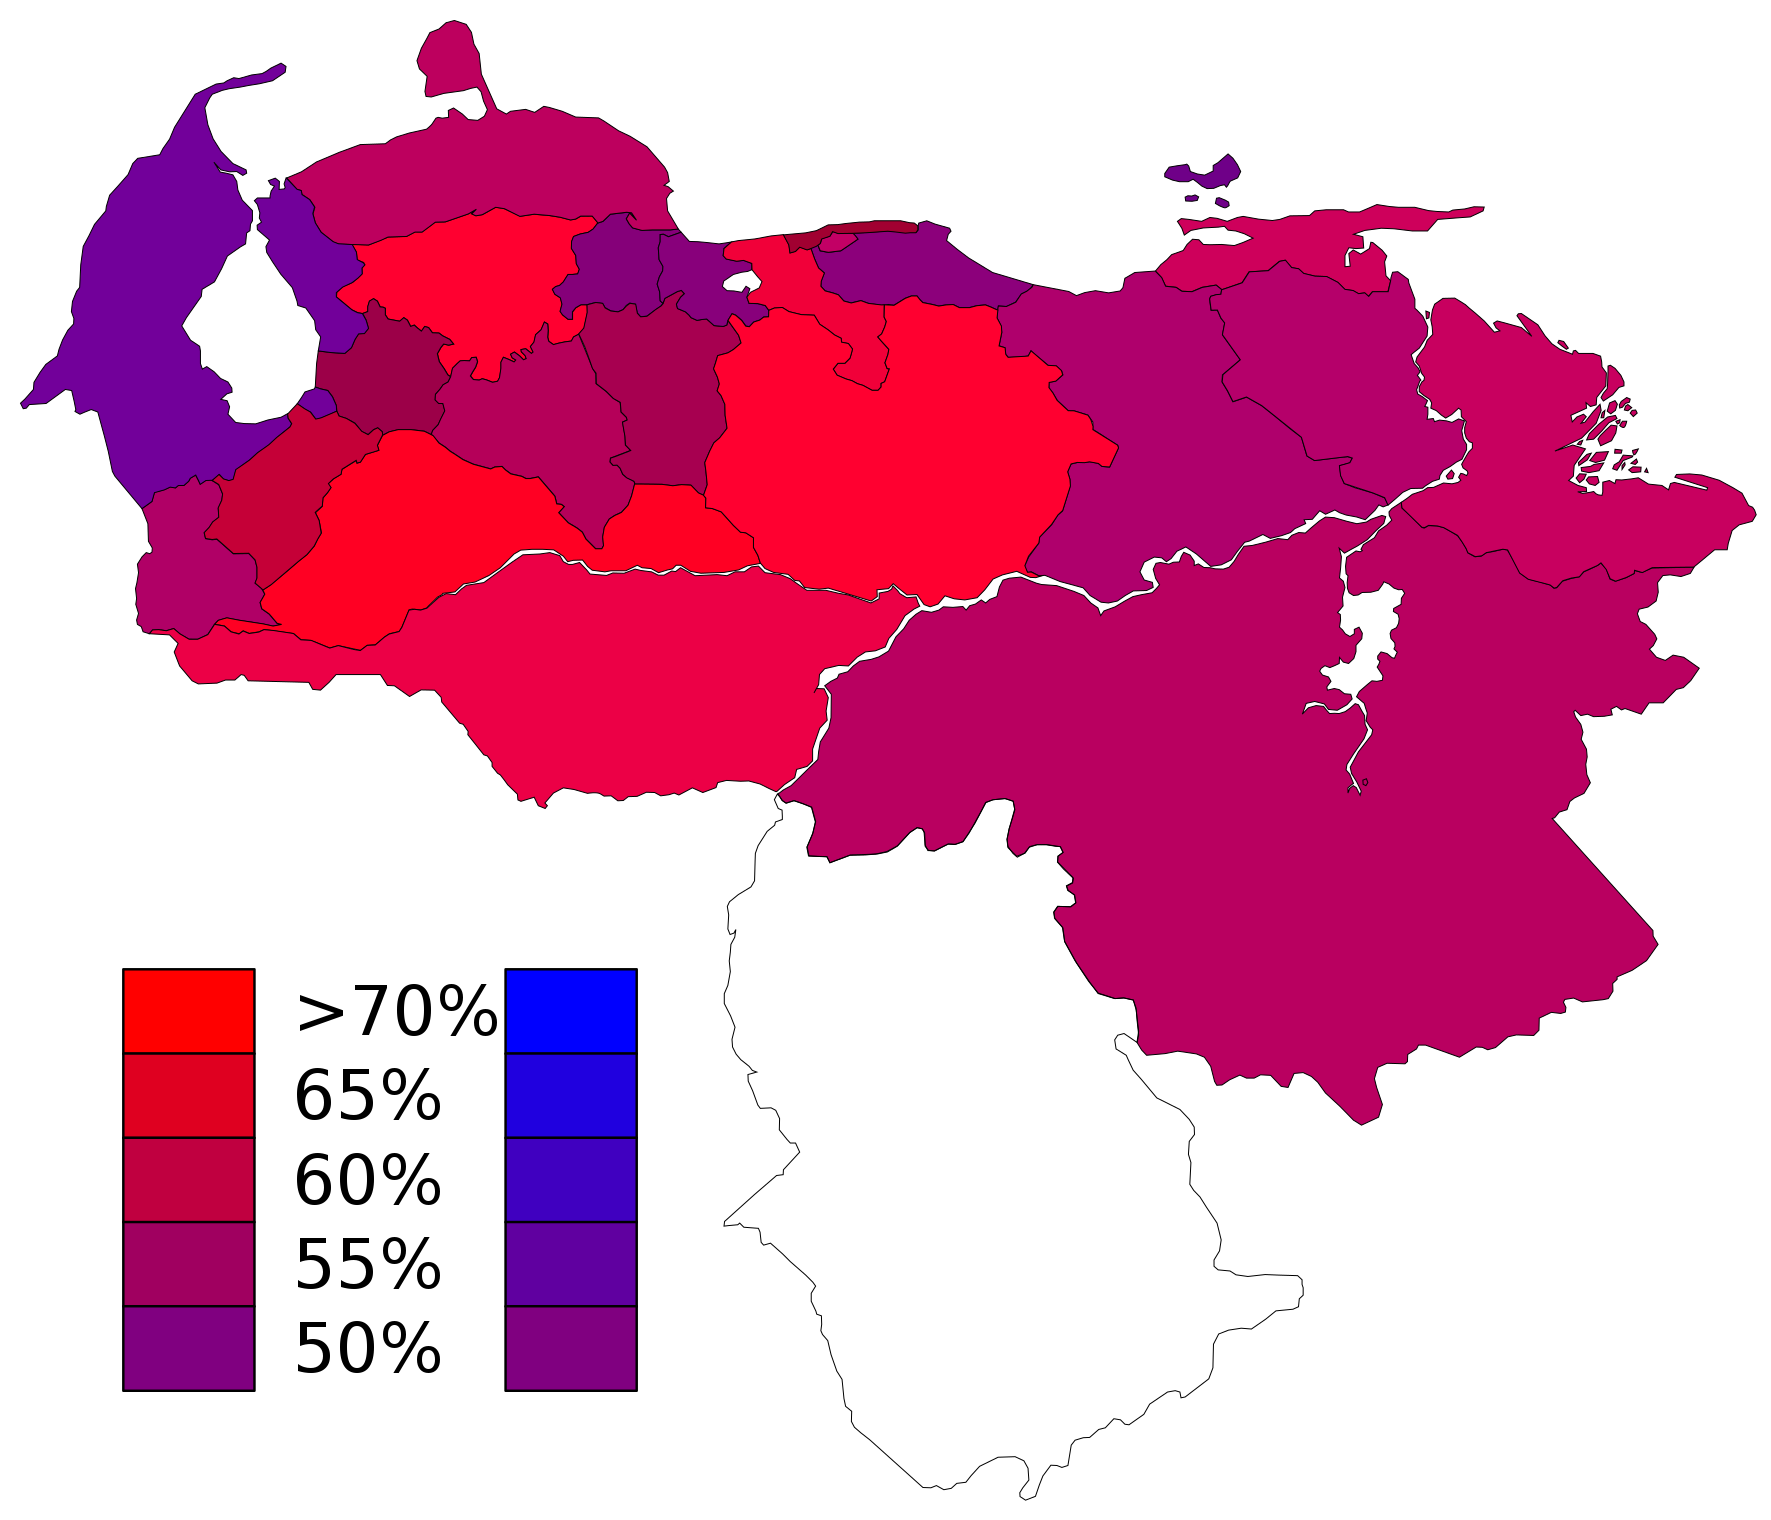 State Results Of The Regional Elections Of Venezuela 2004 In Red Pro Hugo Chavez S Candidates In Blue Against Chavez S Candidat Hugo Chavez Map Venezuela